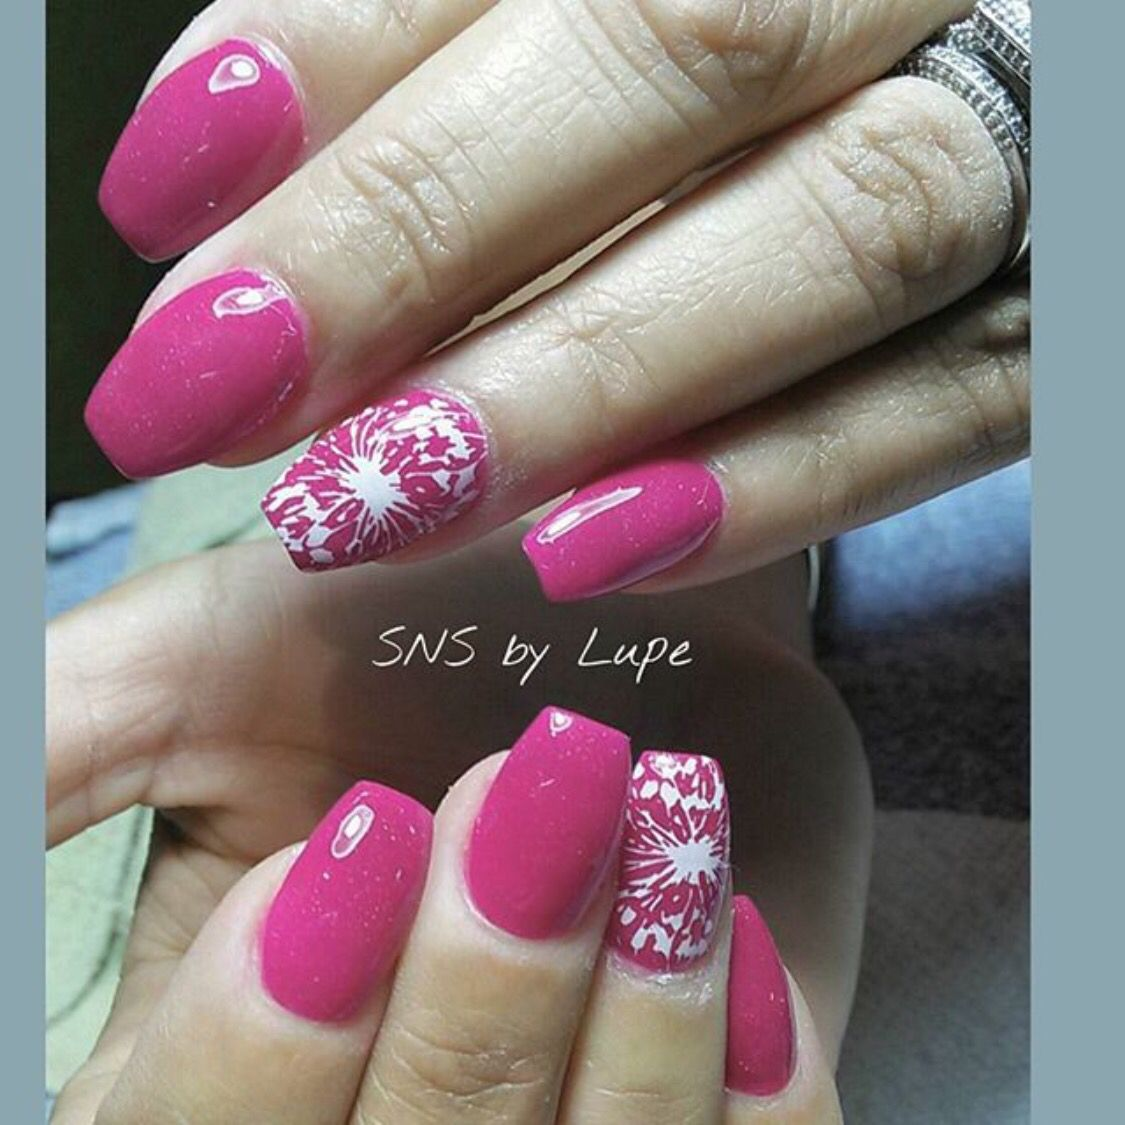 Full set SNS nails with design ! | Skin care | Pinterest | Sns nails ...